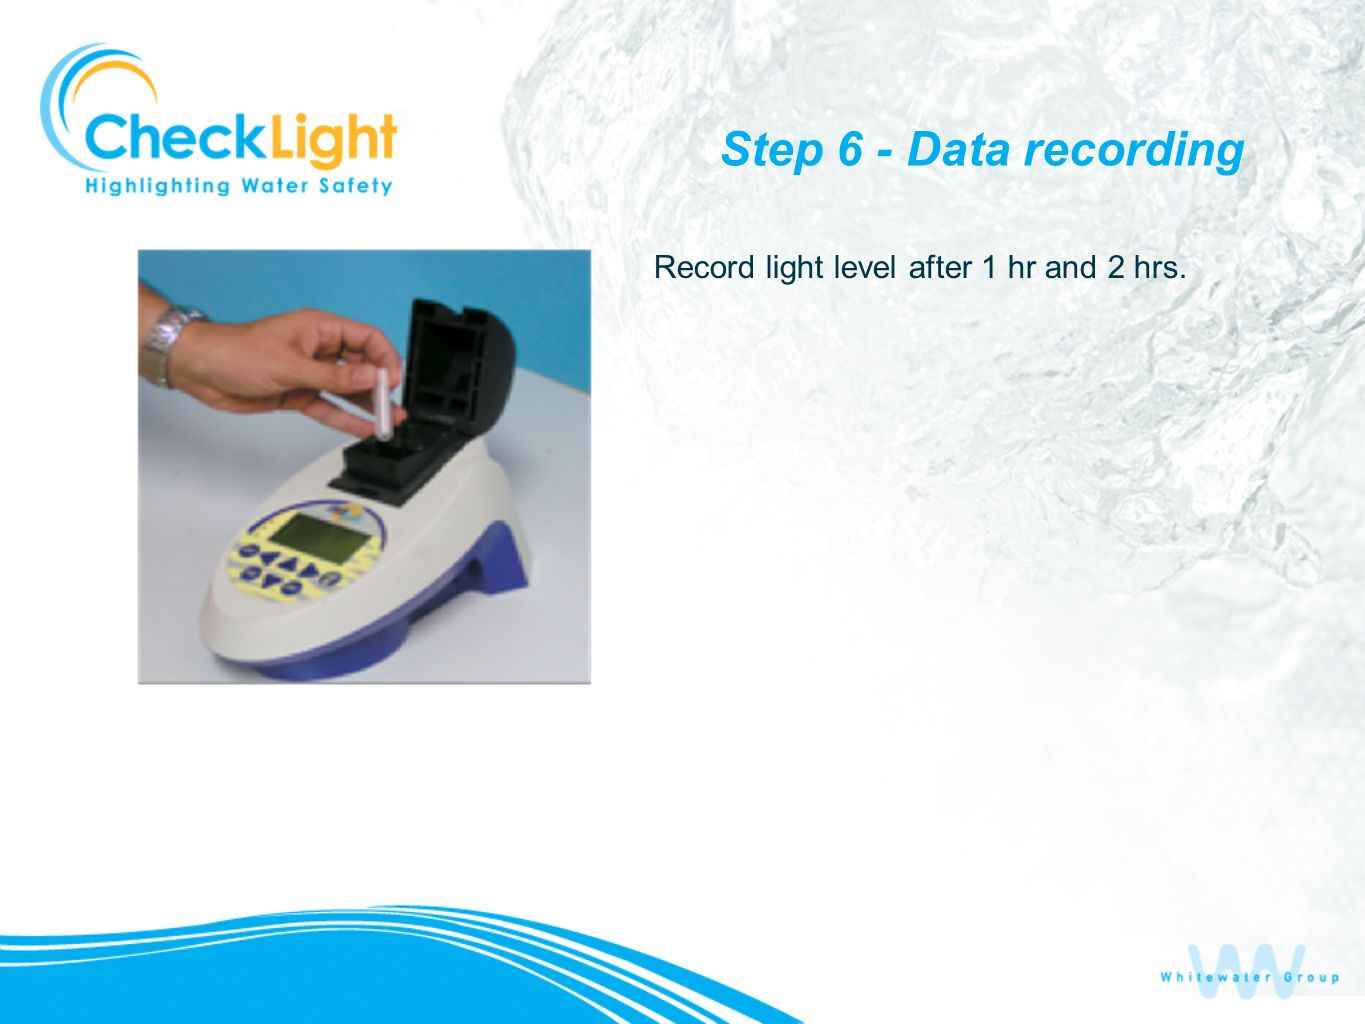 Step 6 - Data recording Record light level after 1 hr and 2 hrs.